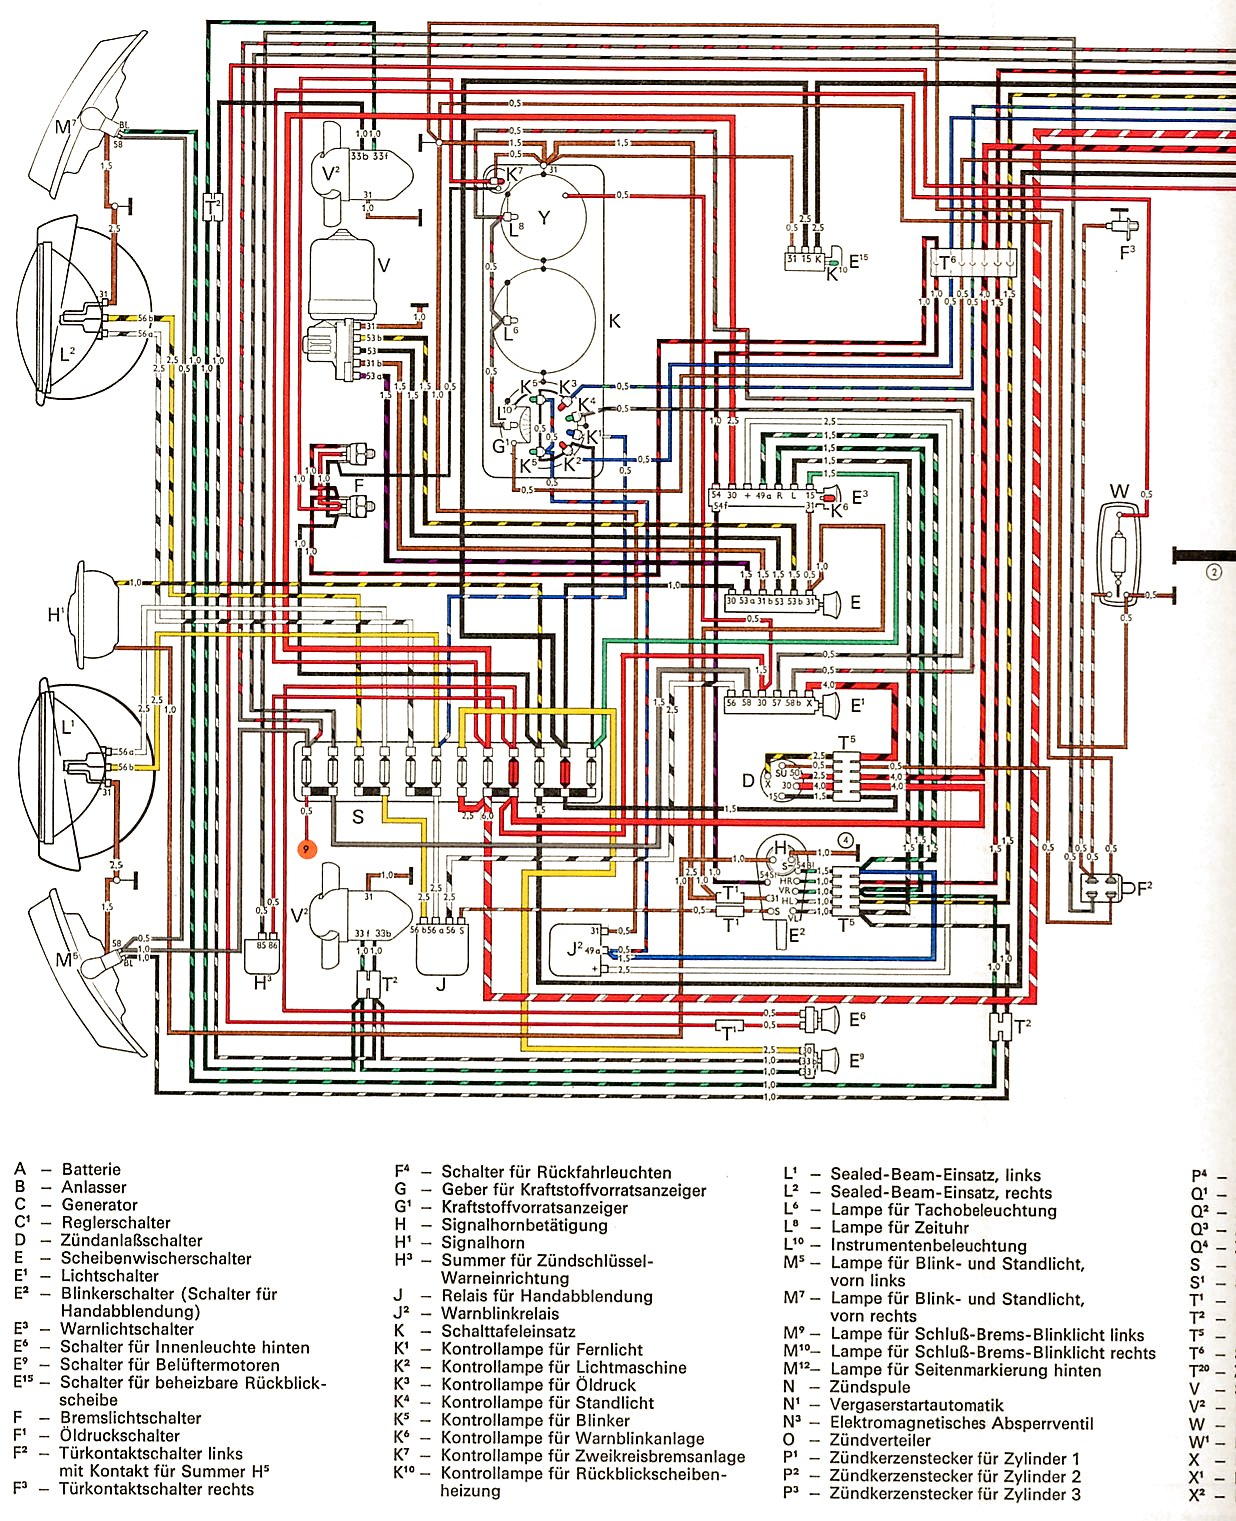 Vw Bus And Other Wiring Diagrams 1968 Chrysler Diagram Com